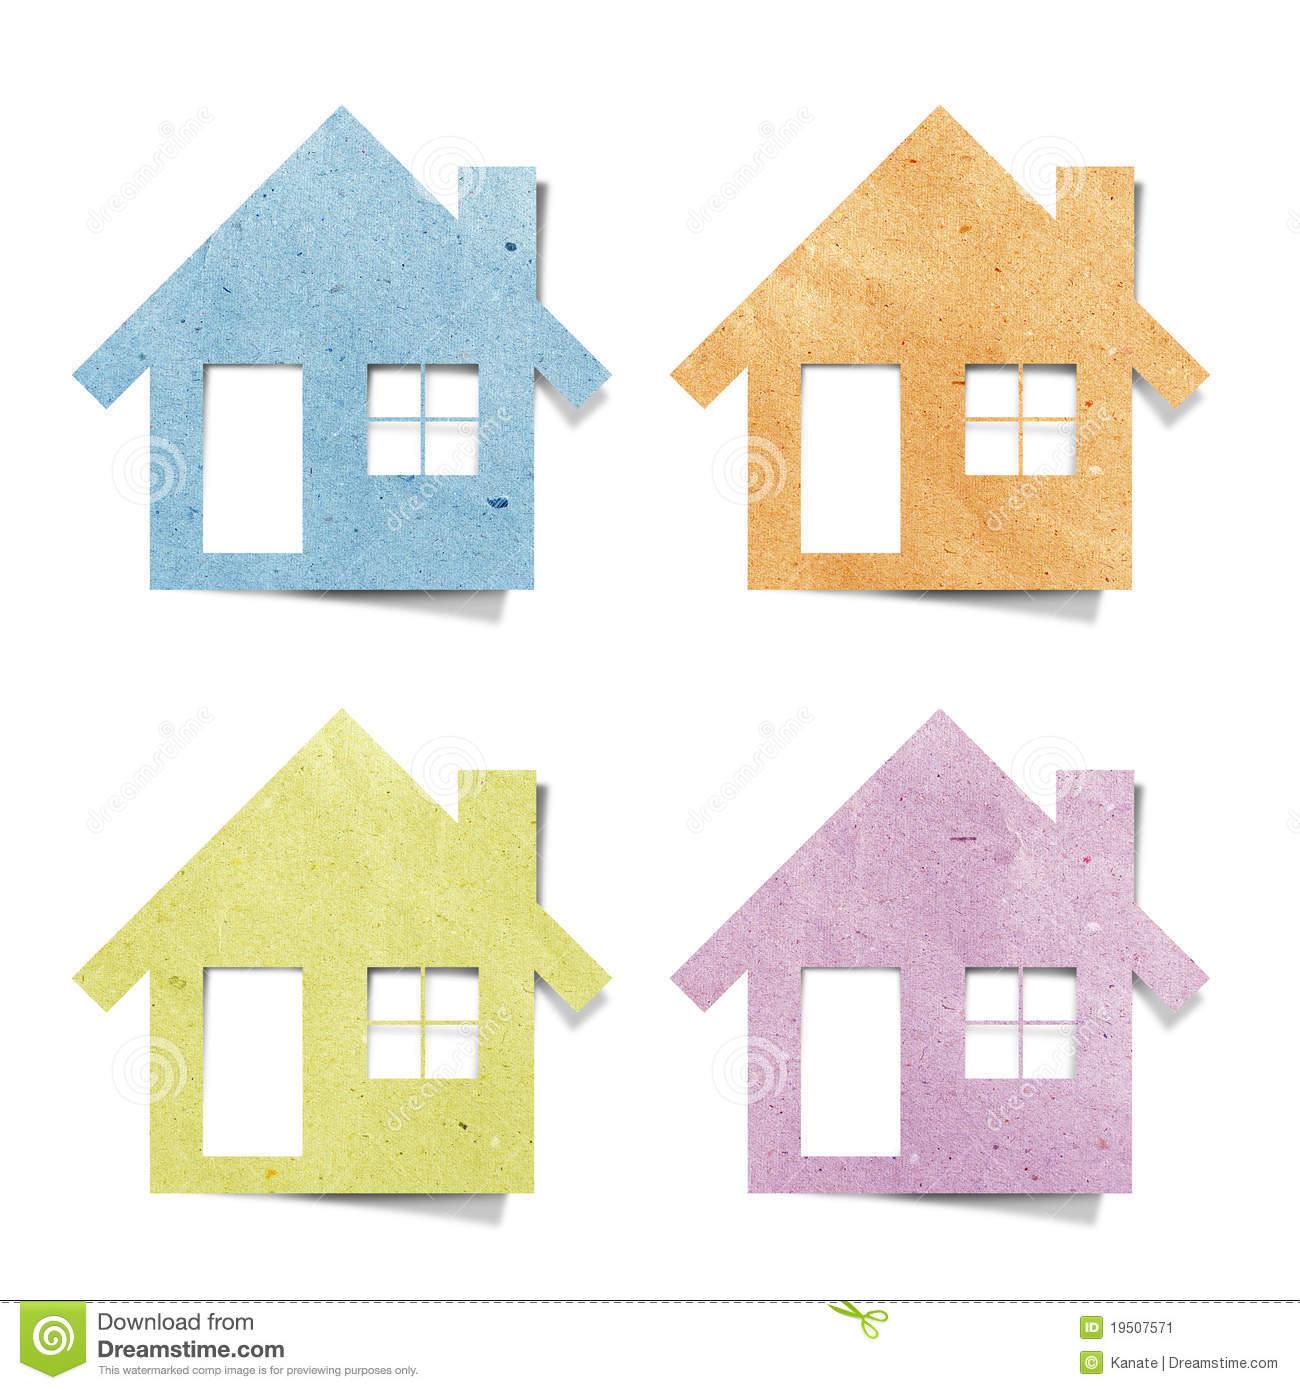 More similar stock images of ` Tag house recycled paper craft `